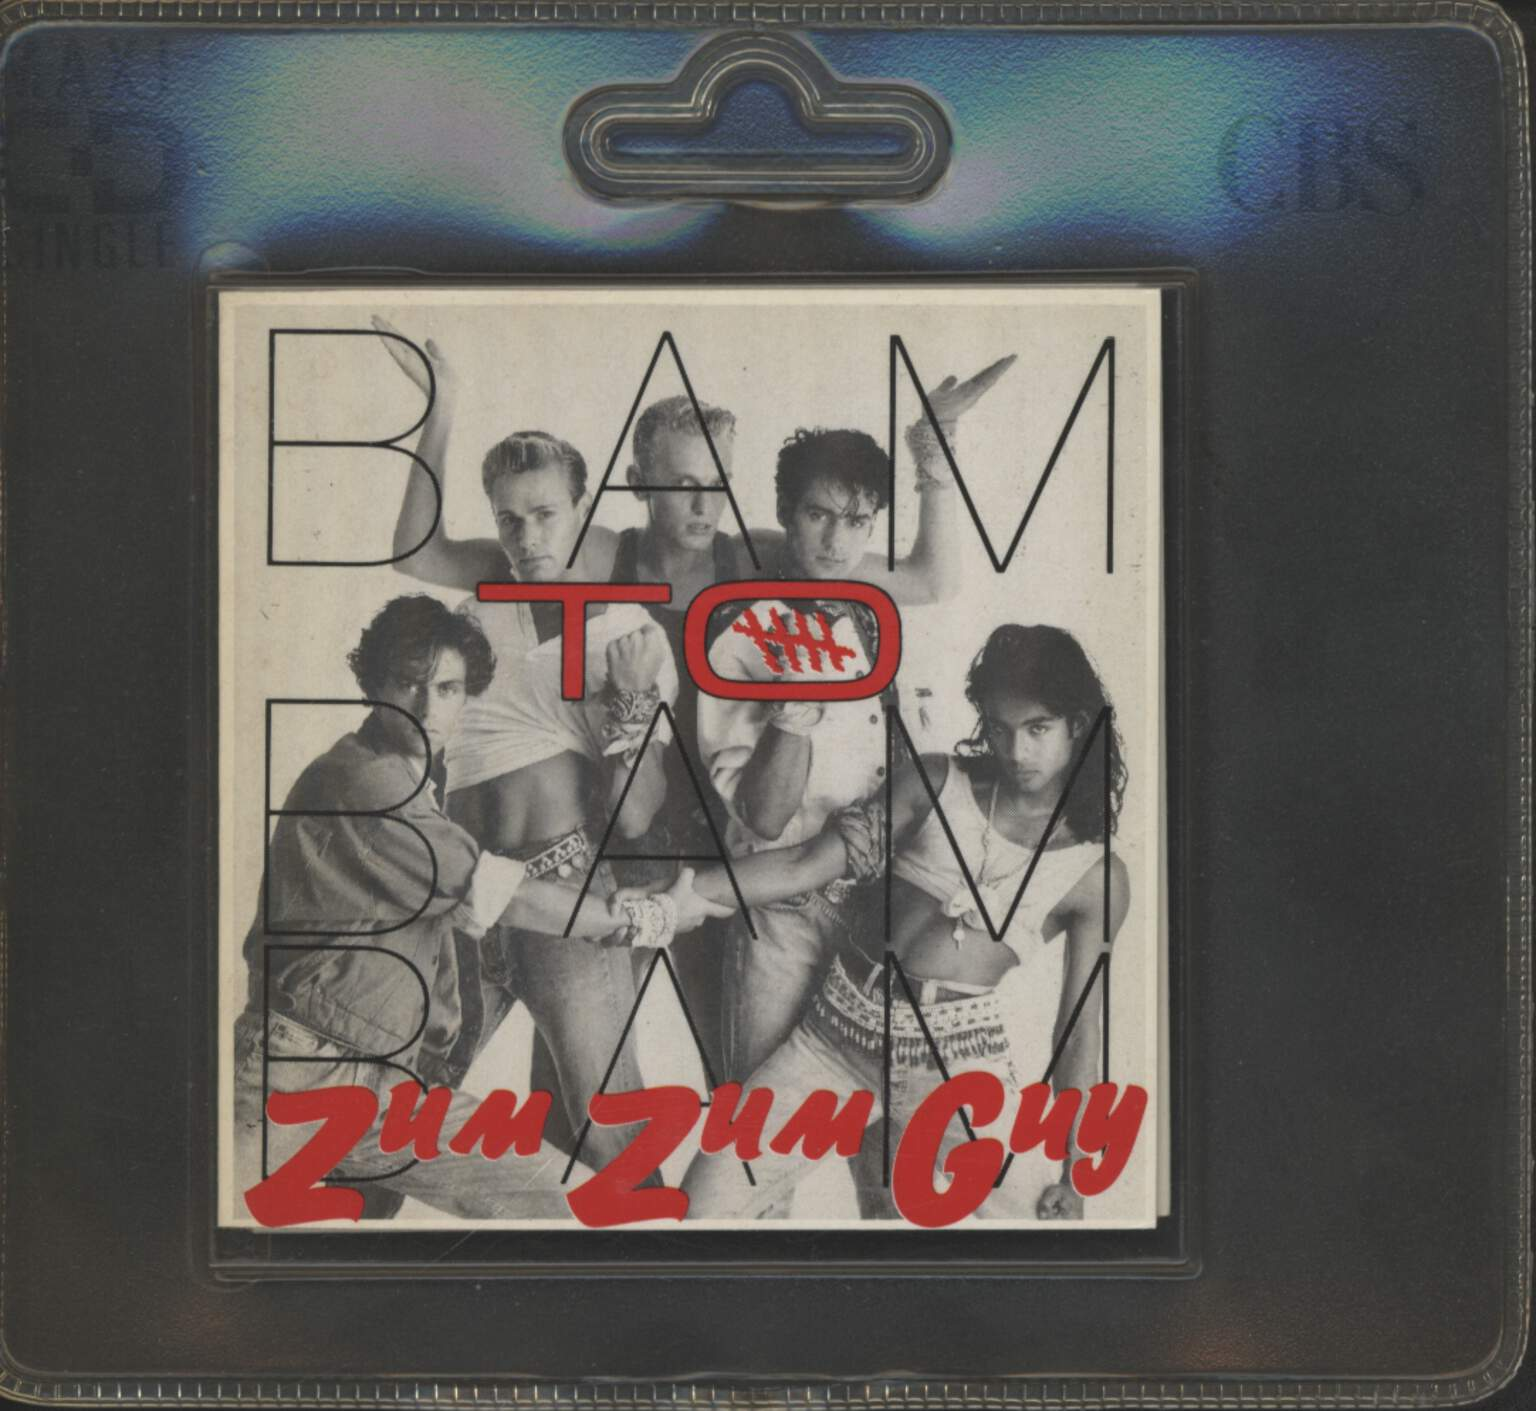 "Bam To Bam Bam: Zum Zum Guy, 3"" CD"